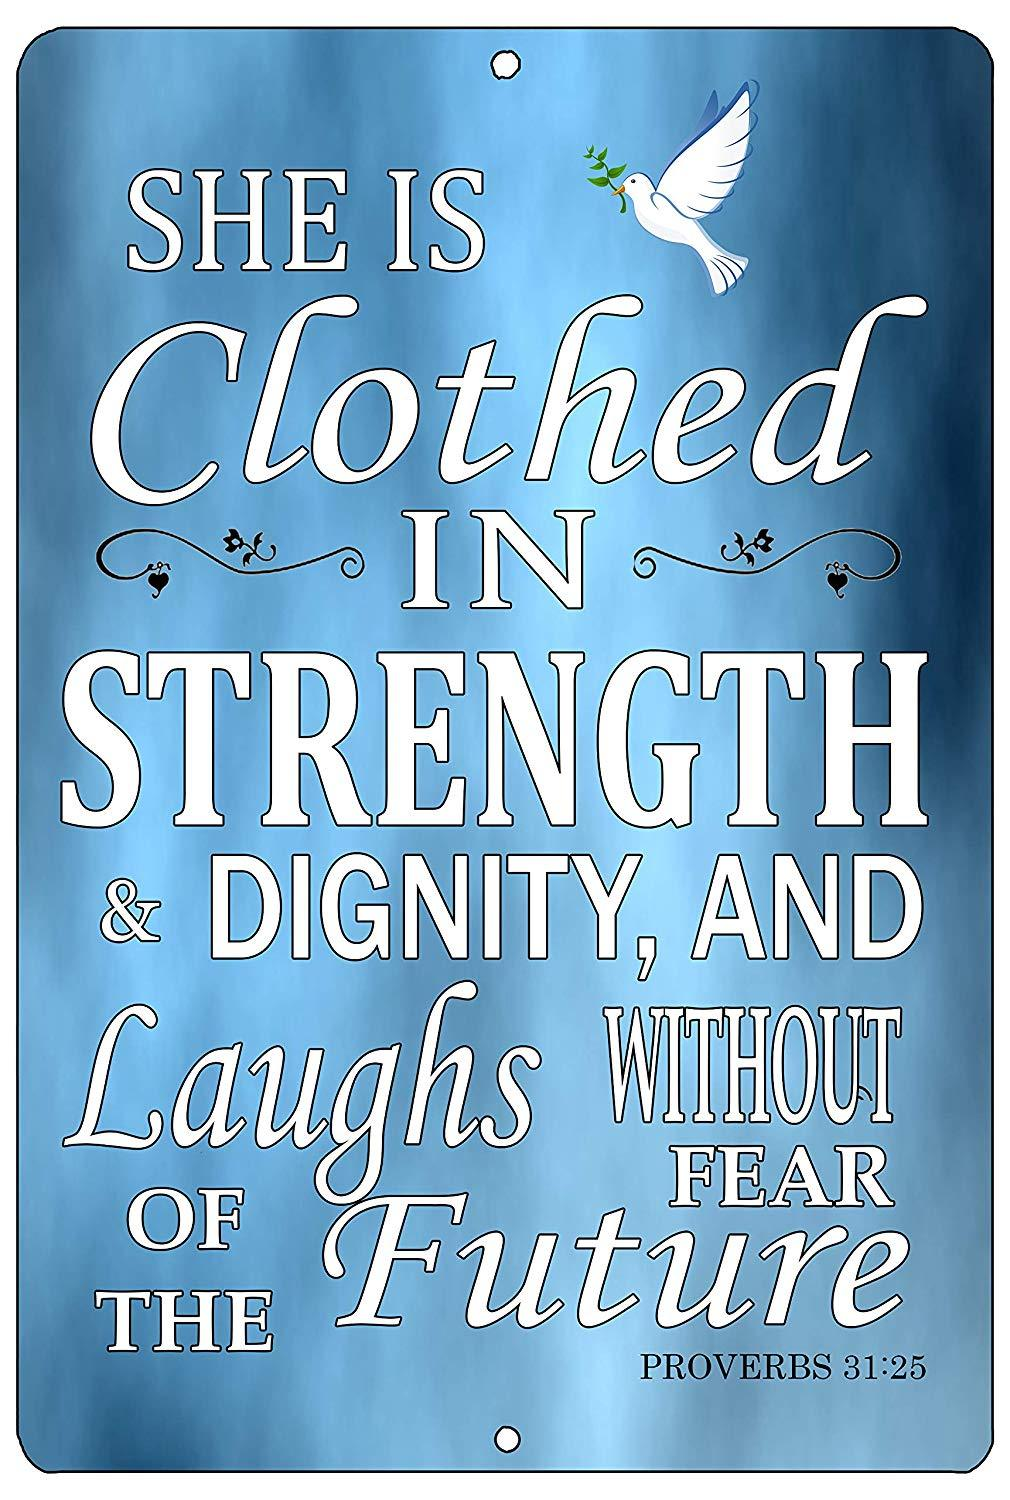 Christian Bible Verse Quote Proverbs 31:25 Clothed in Strength and Dignity Metal Tin Sign Wall Decor - Funny Signs - Rogue River Tactical  - Rogue River Tactical